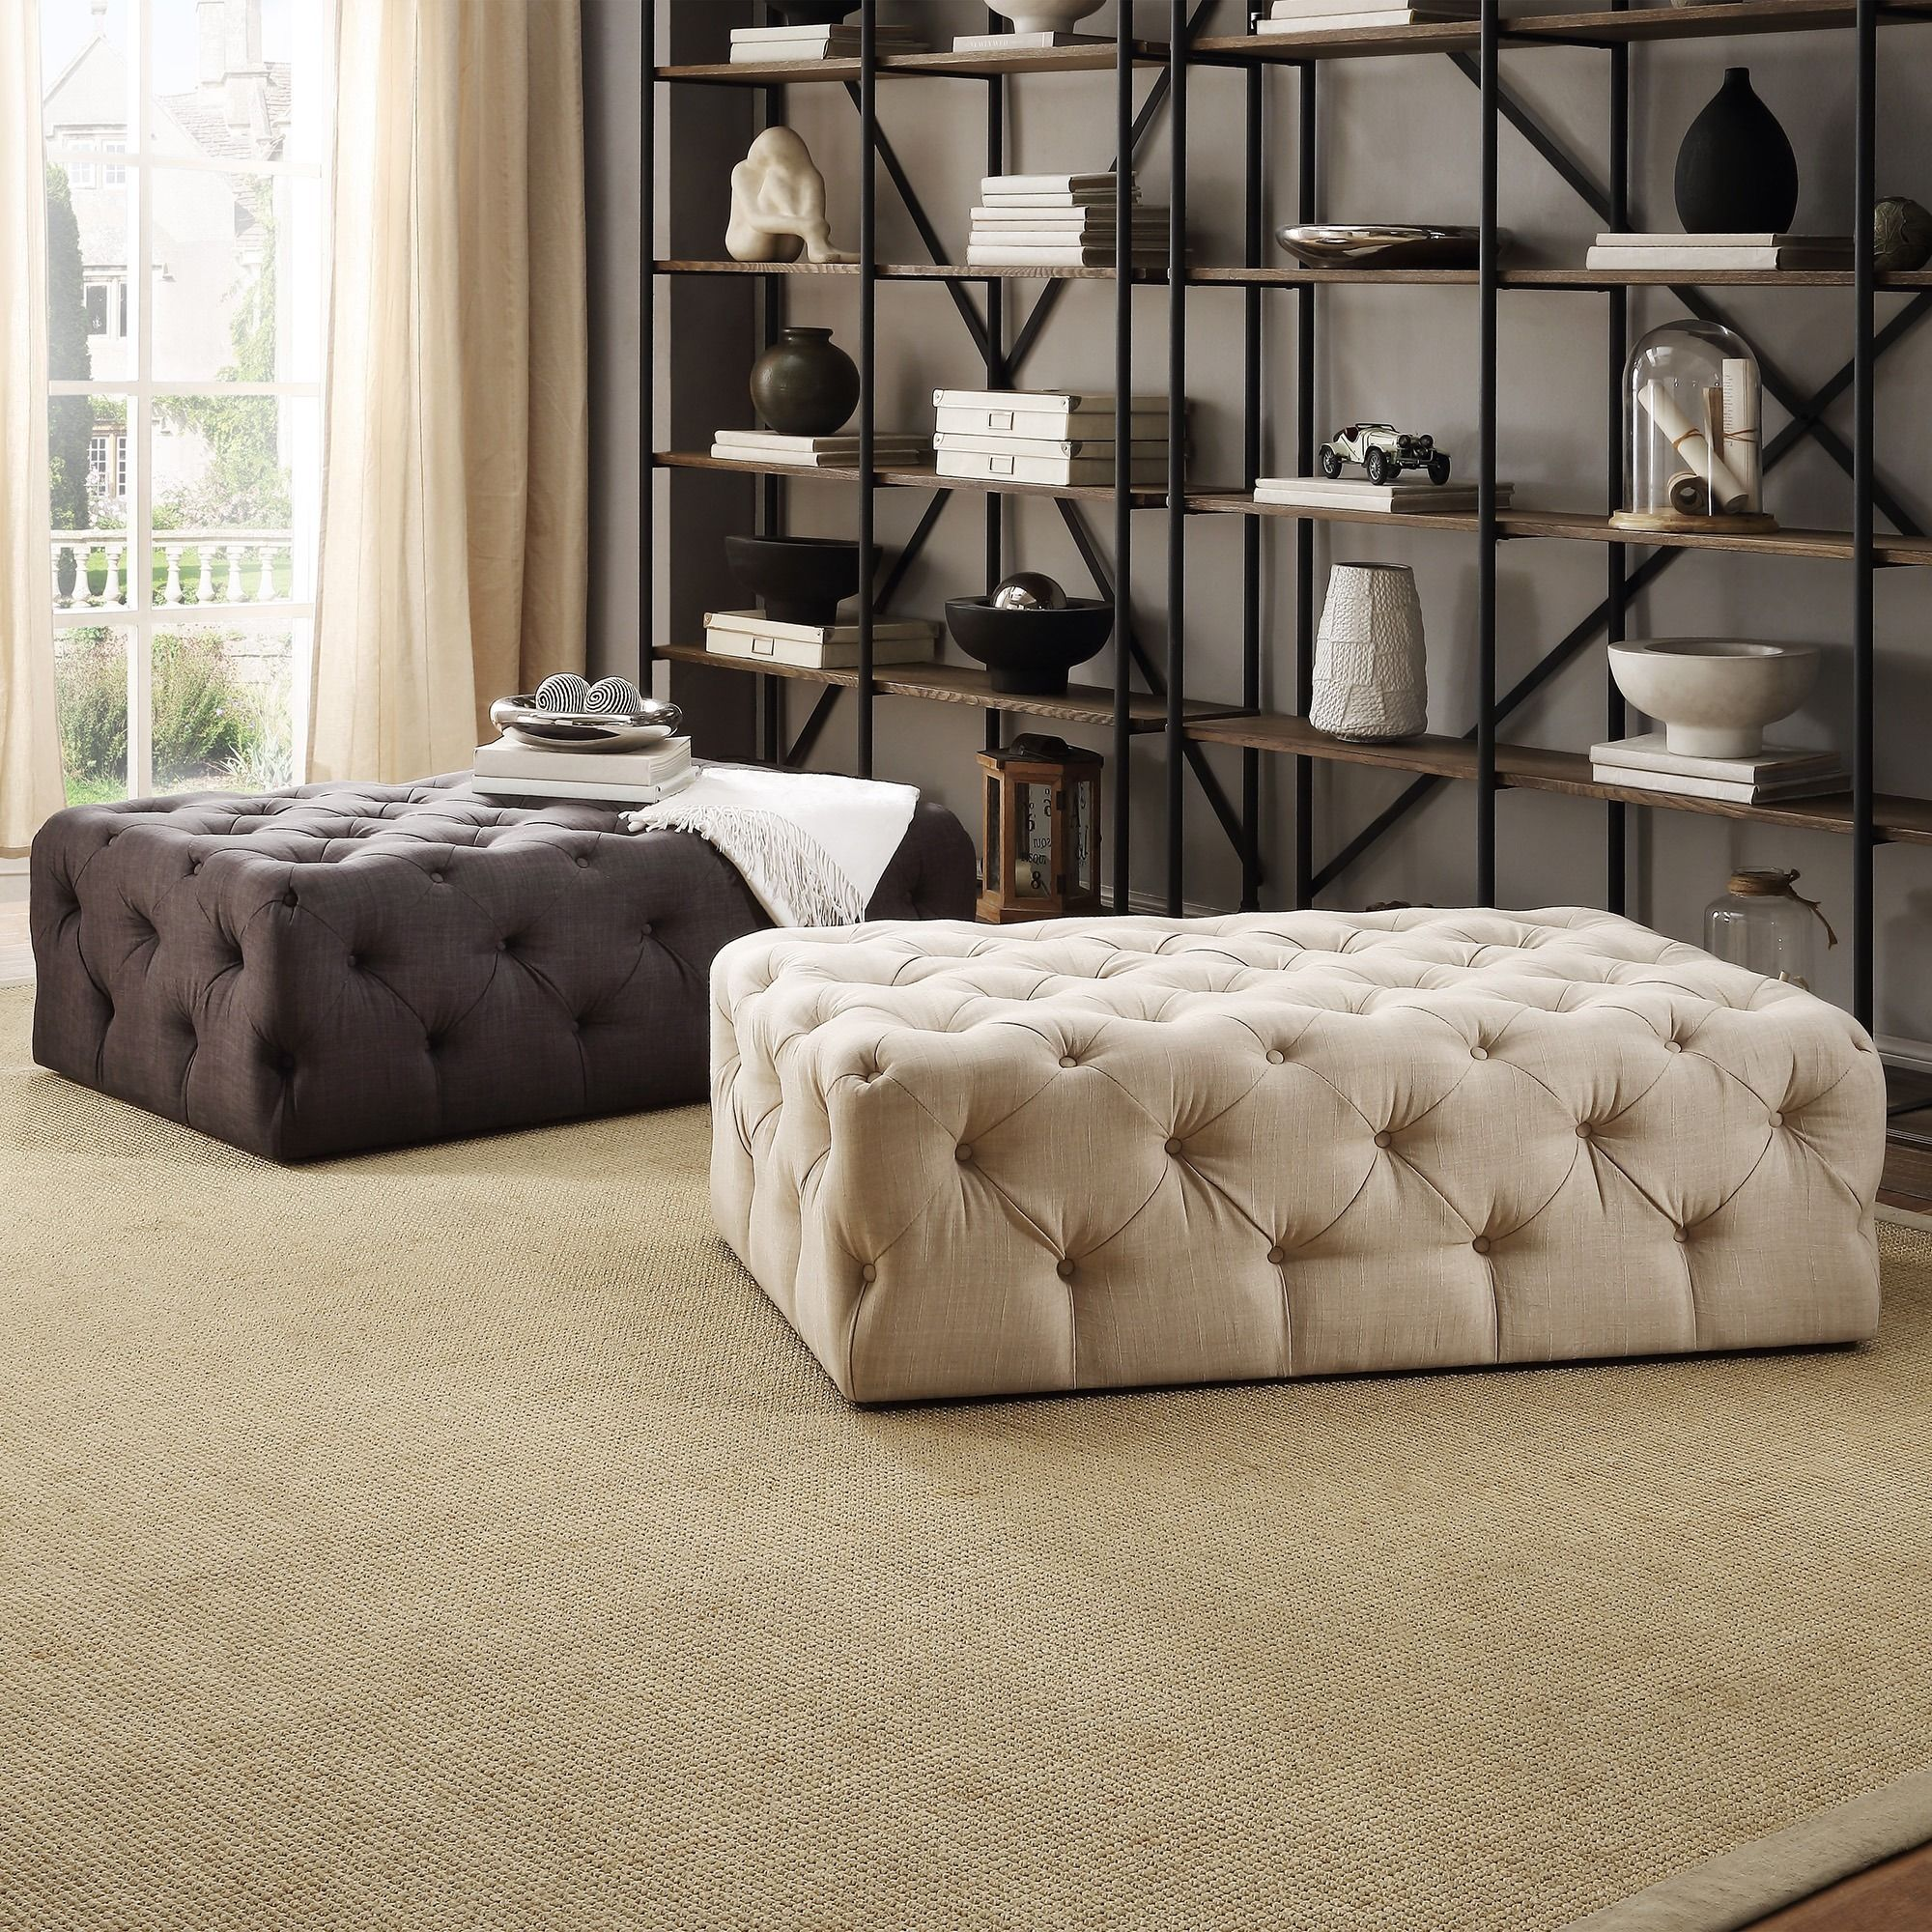 Knightsbridge+Rectangular+Linen+Tufted+Cocktail+Ottoman+with+Casters ...